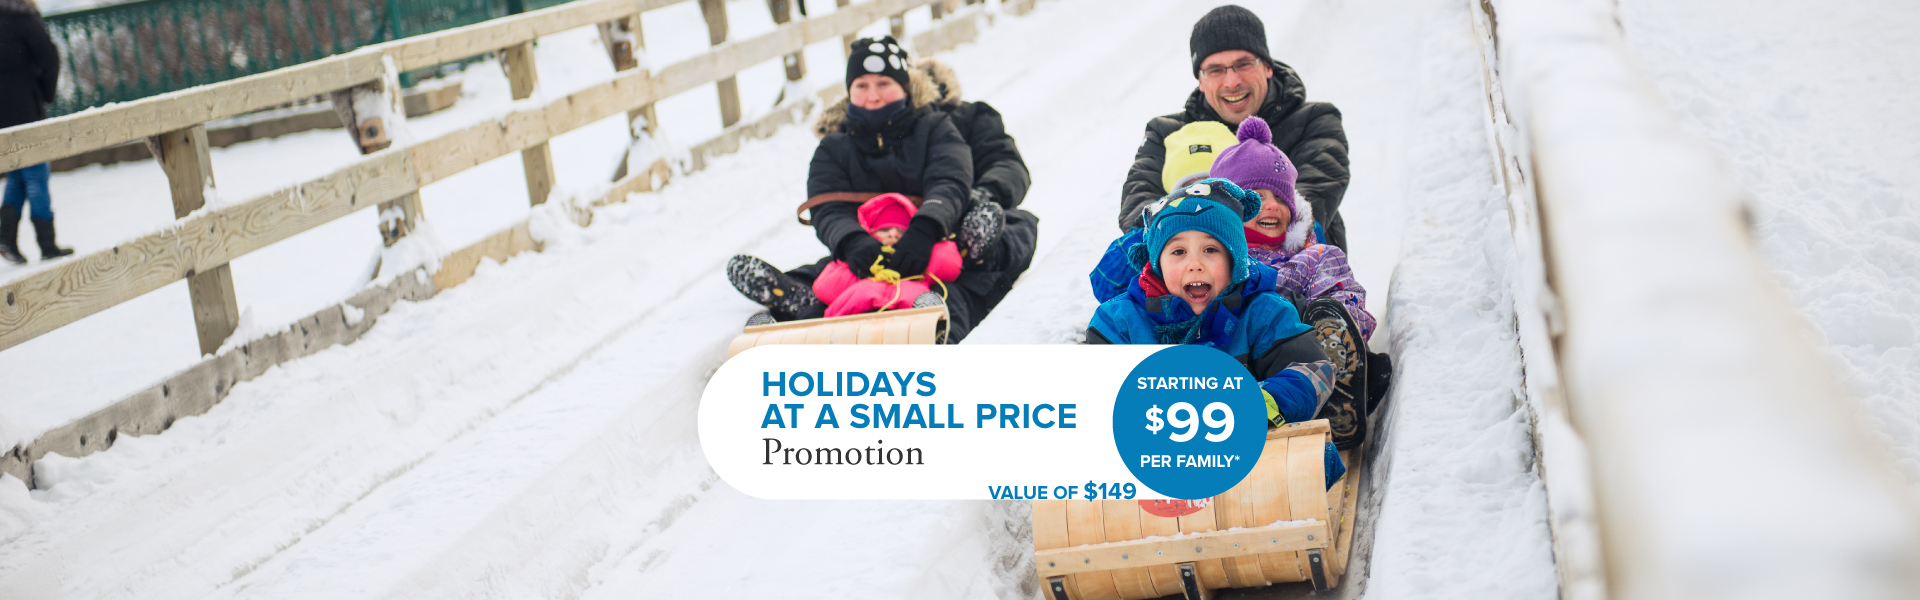 Small Price Family vacations